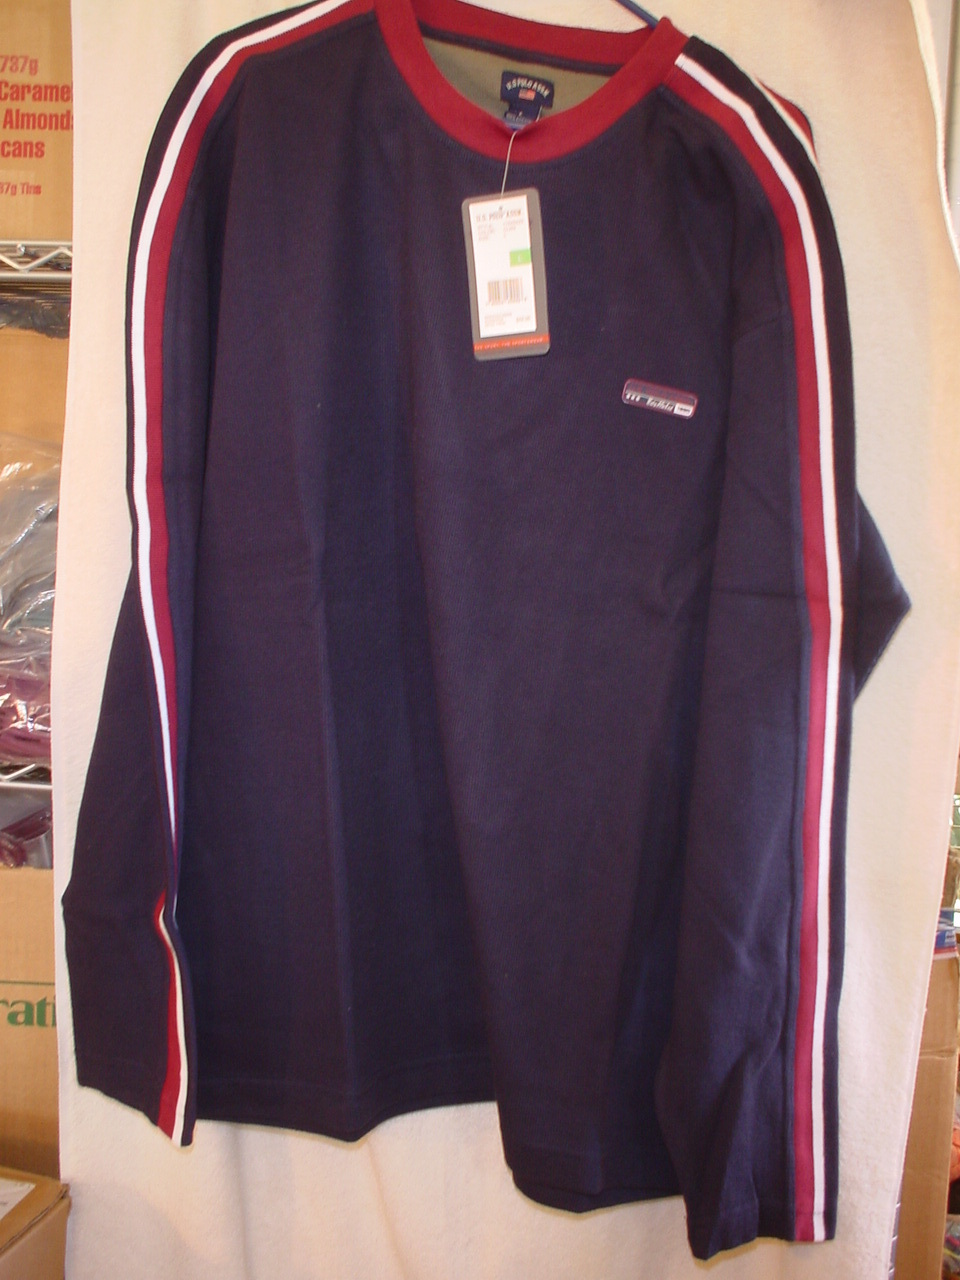 US Polo Assn Long Sleeve Sweatshirt M/L/XL/2XL NWT